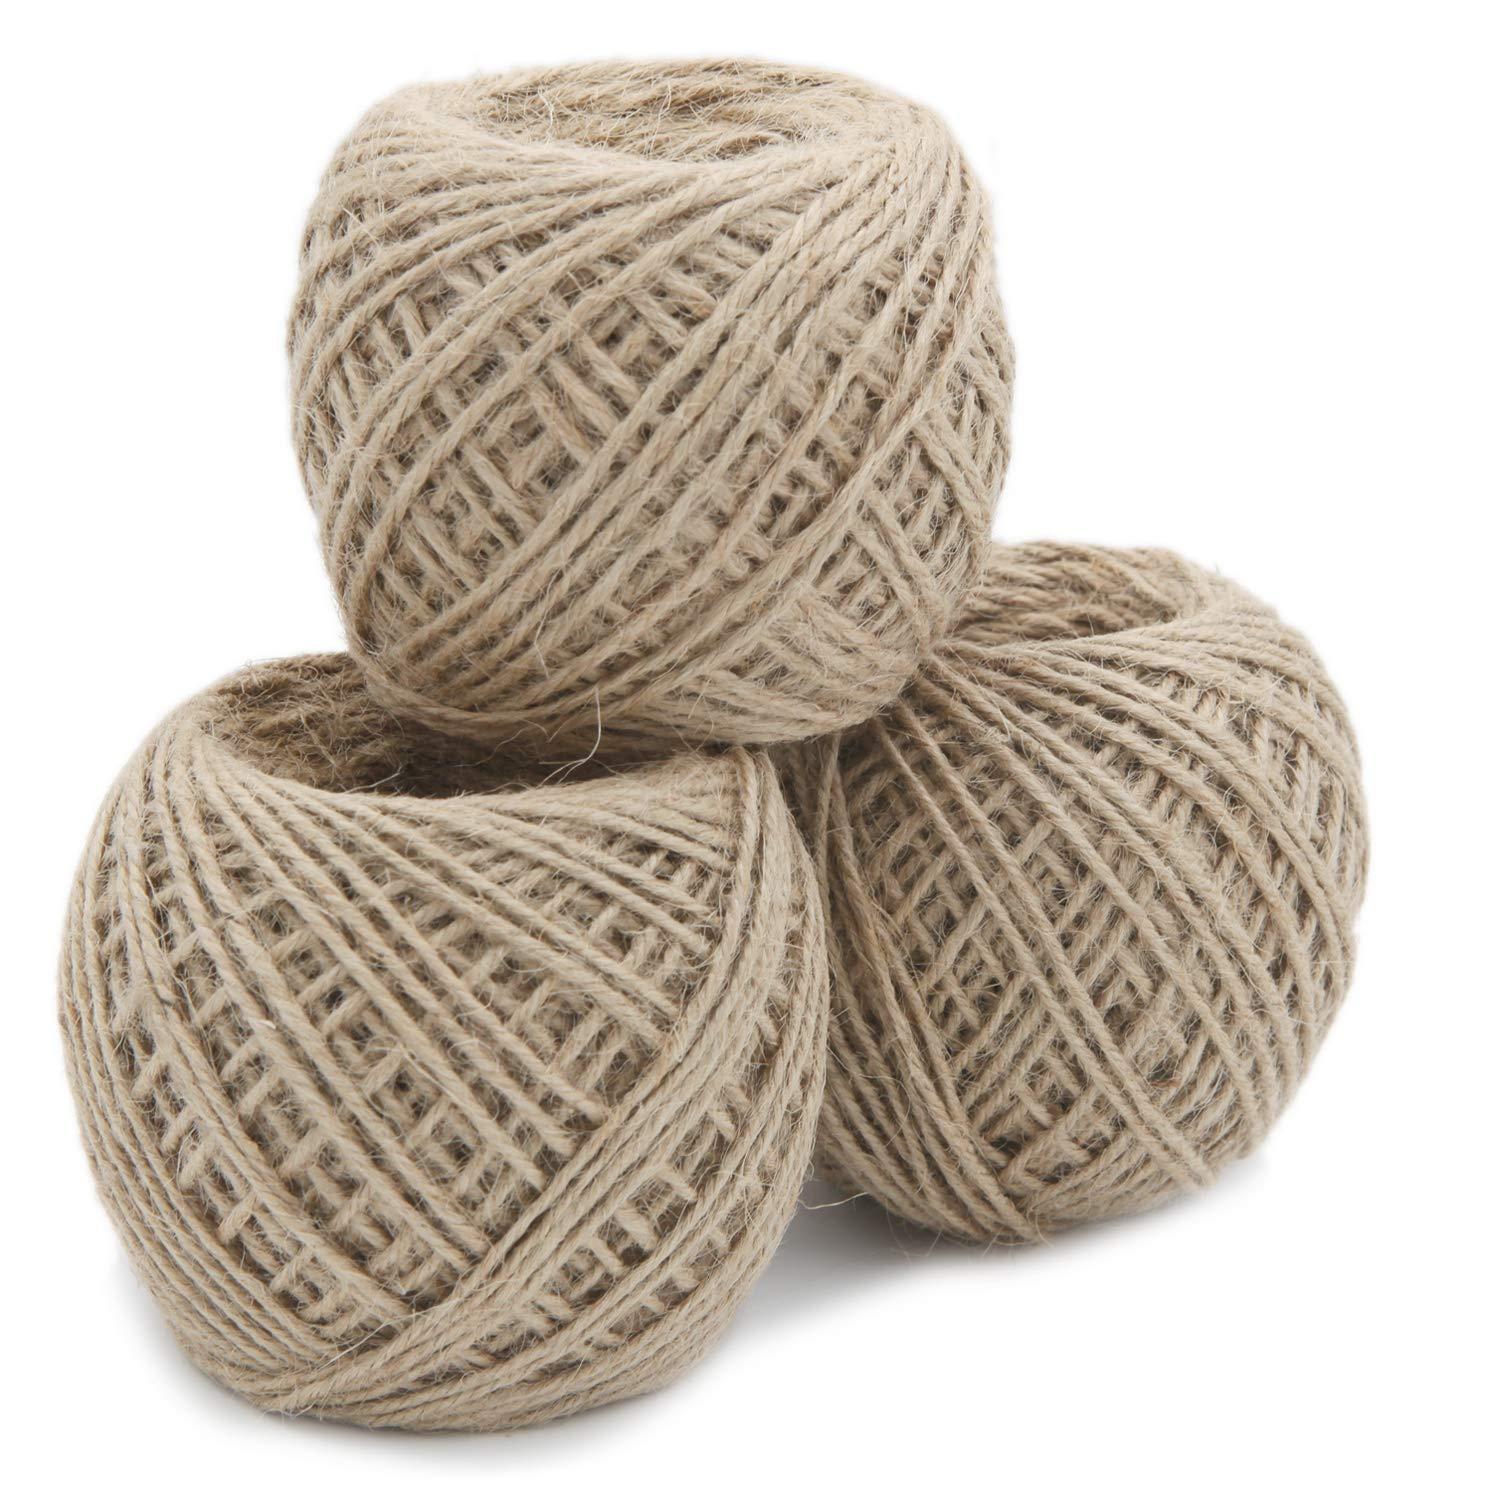 JONYEE Jute Twine String//Rope for Crafts,Gardening,Wrapping,Packing Picture Hanging and Decoration 984 Feets//328 Yards 3 PLY,2MM,3 Rolls,328 Feets per Roll